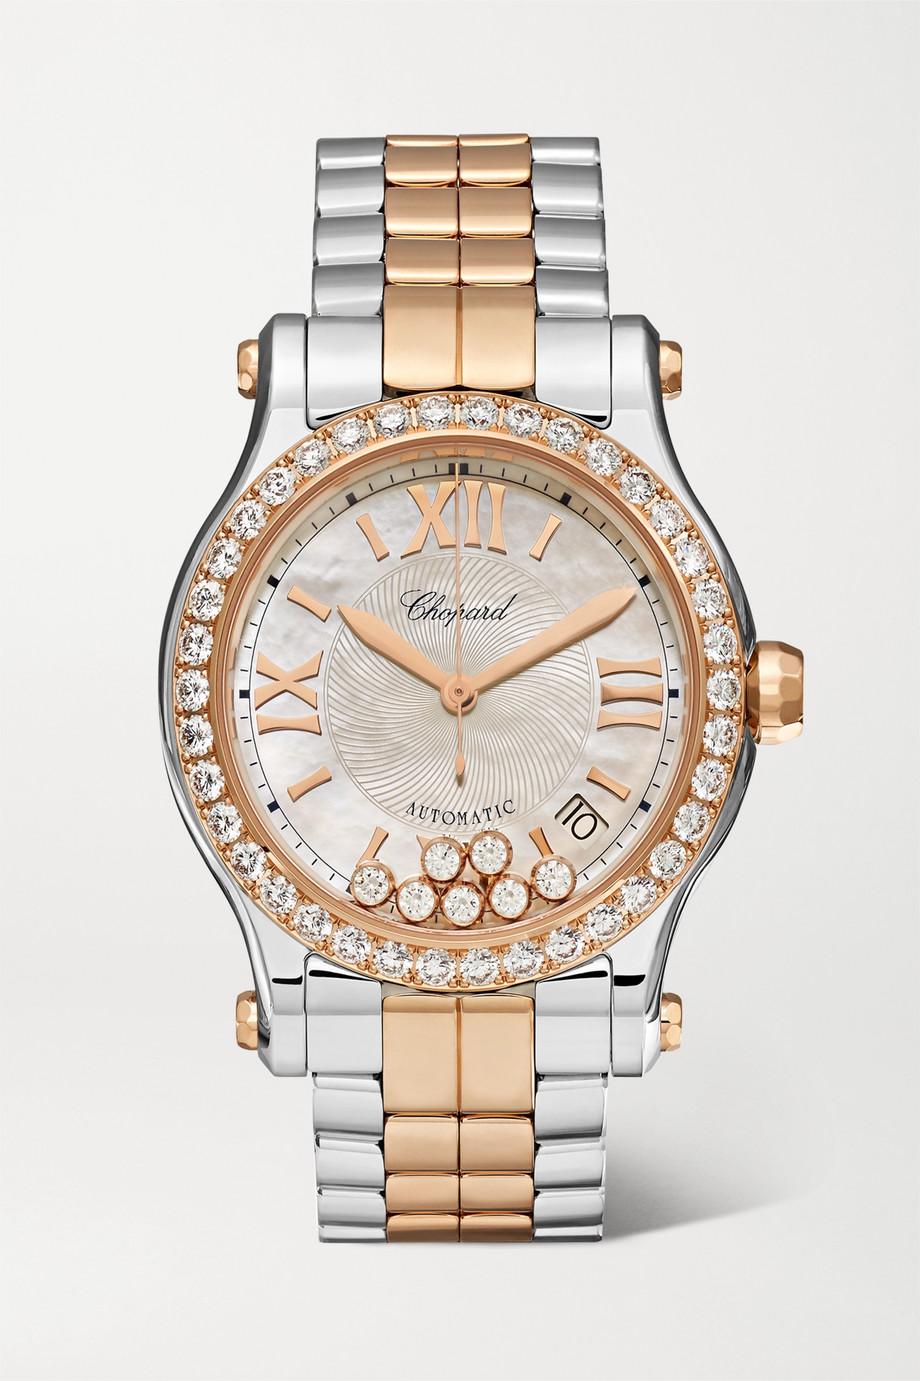 Chopard Happy Sport Automatic 36mm 18-karat rose gold, stainless steel, diamond and mother-of-pearl watch